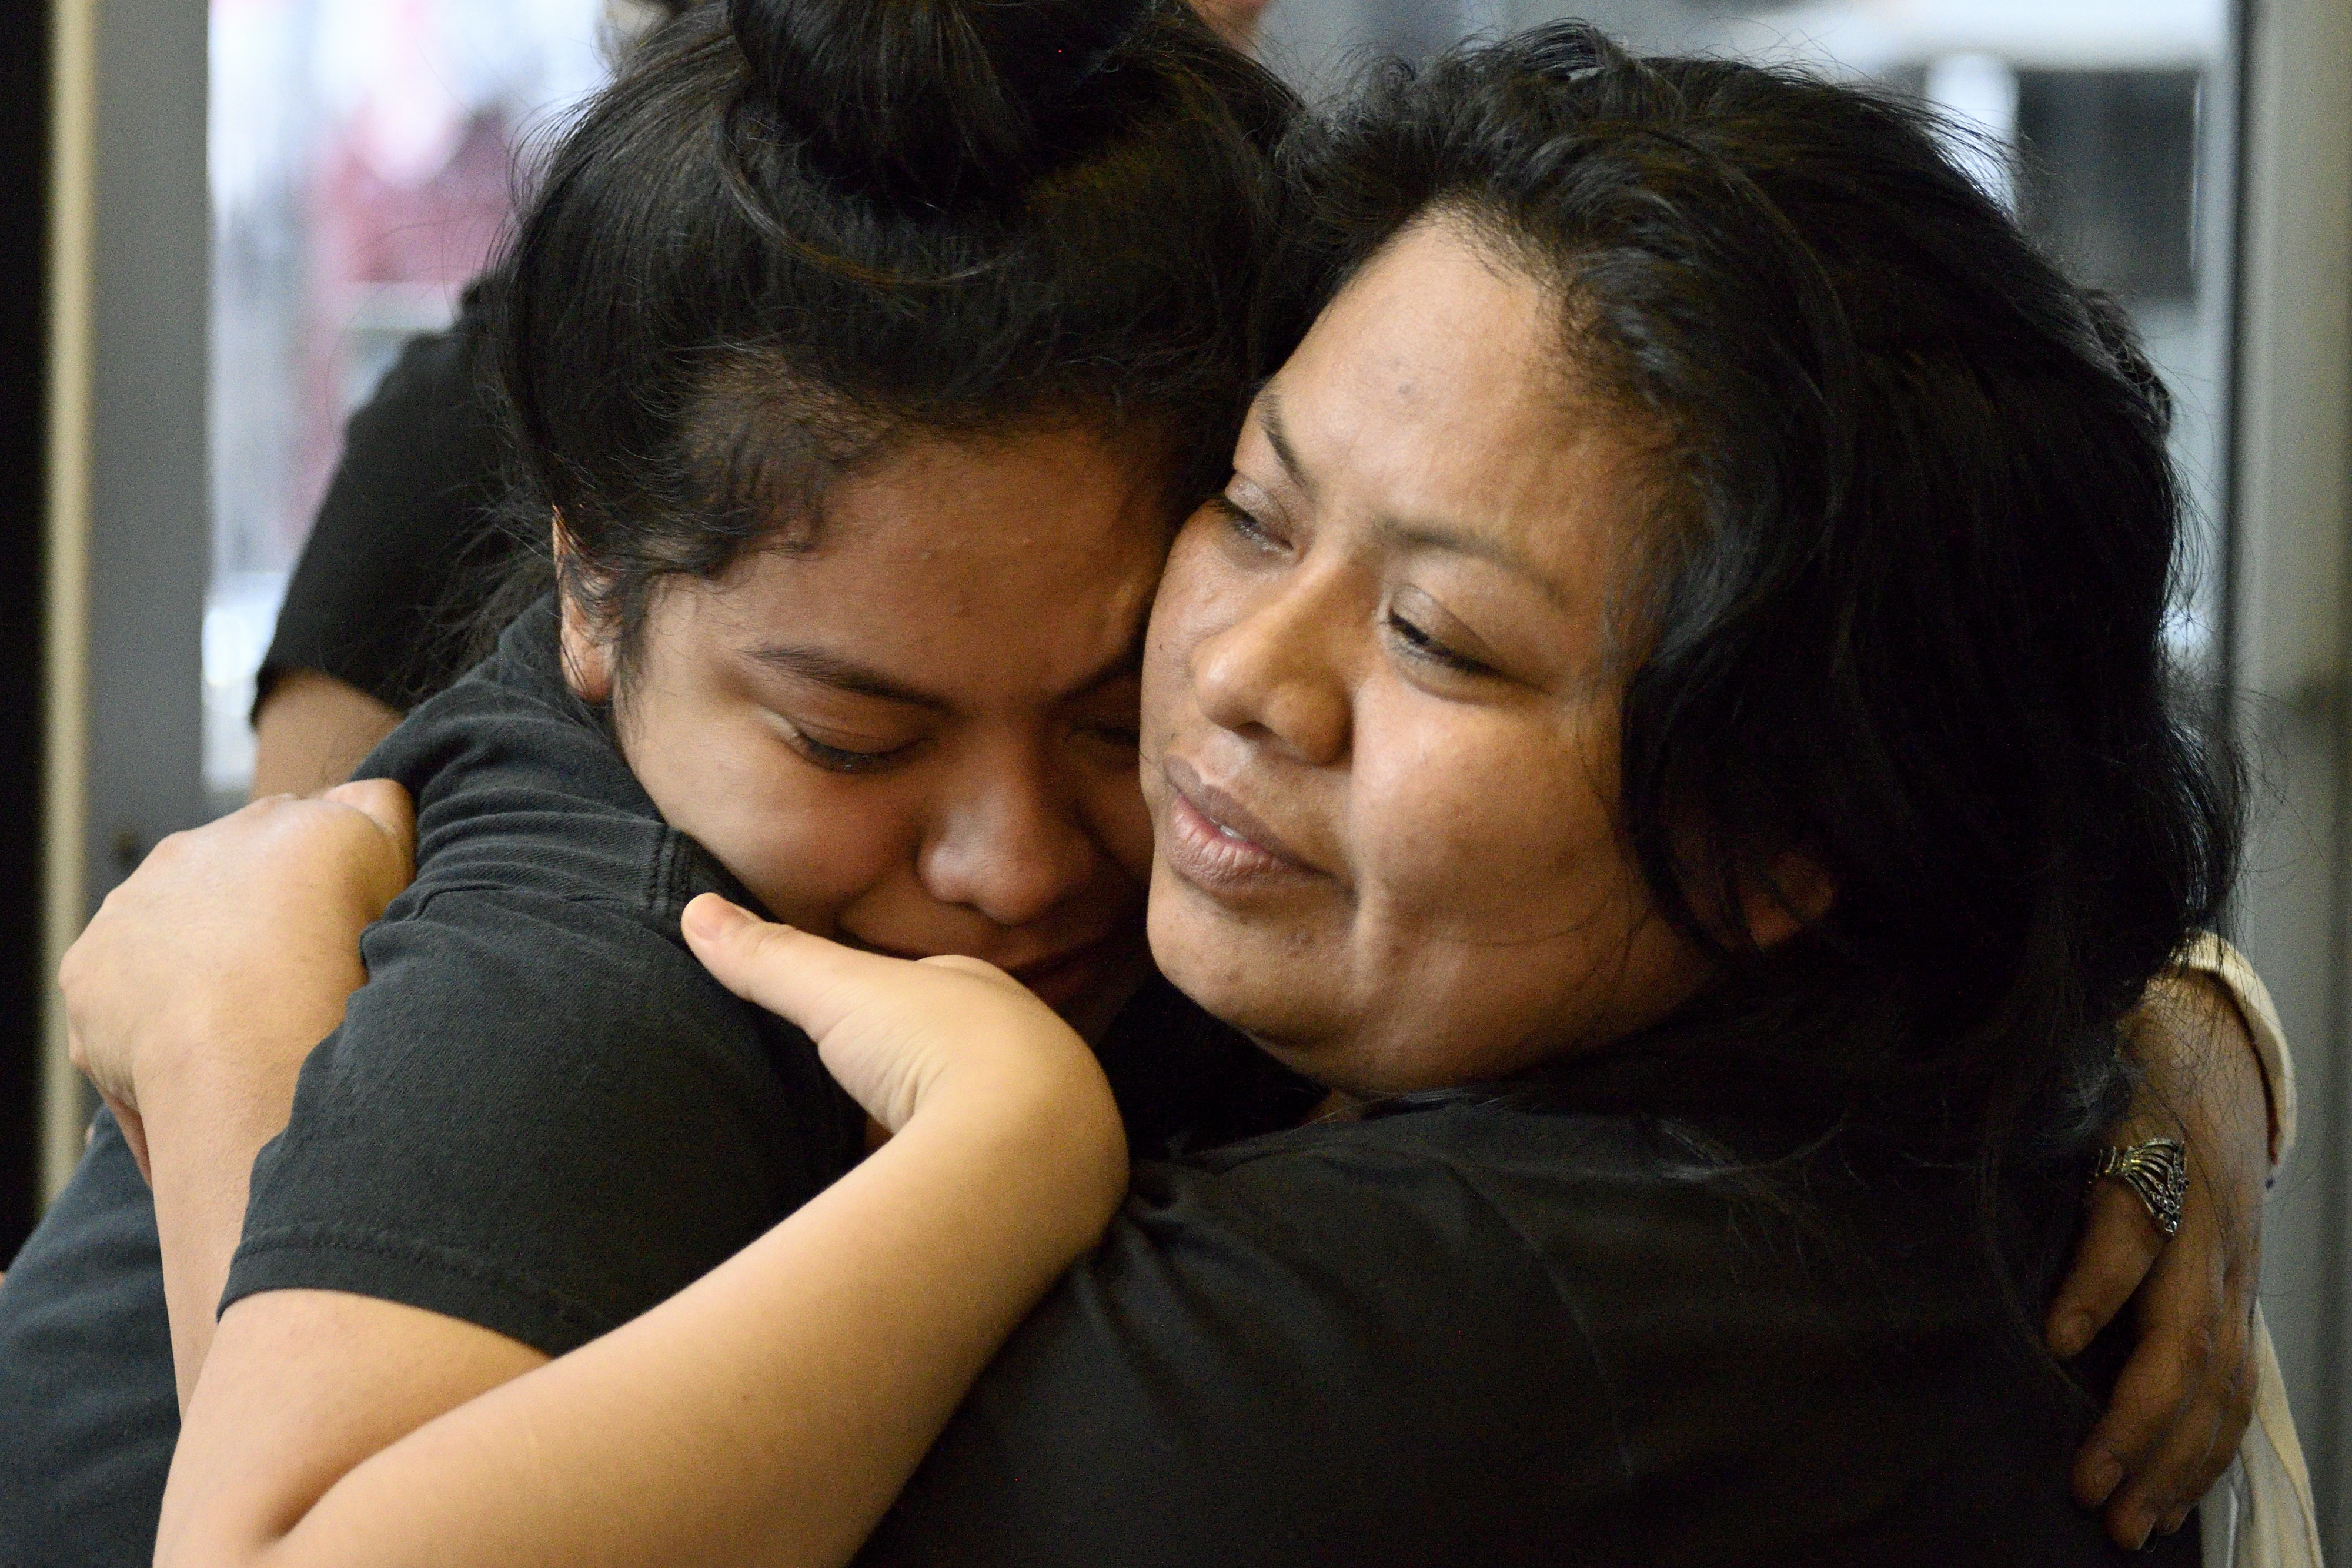 Undocumented immigrant leaves sanctuary to occupy Sen. Casey office in Philadelphia